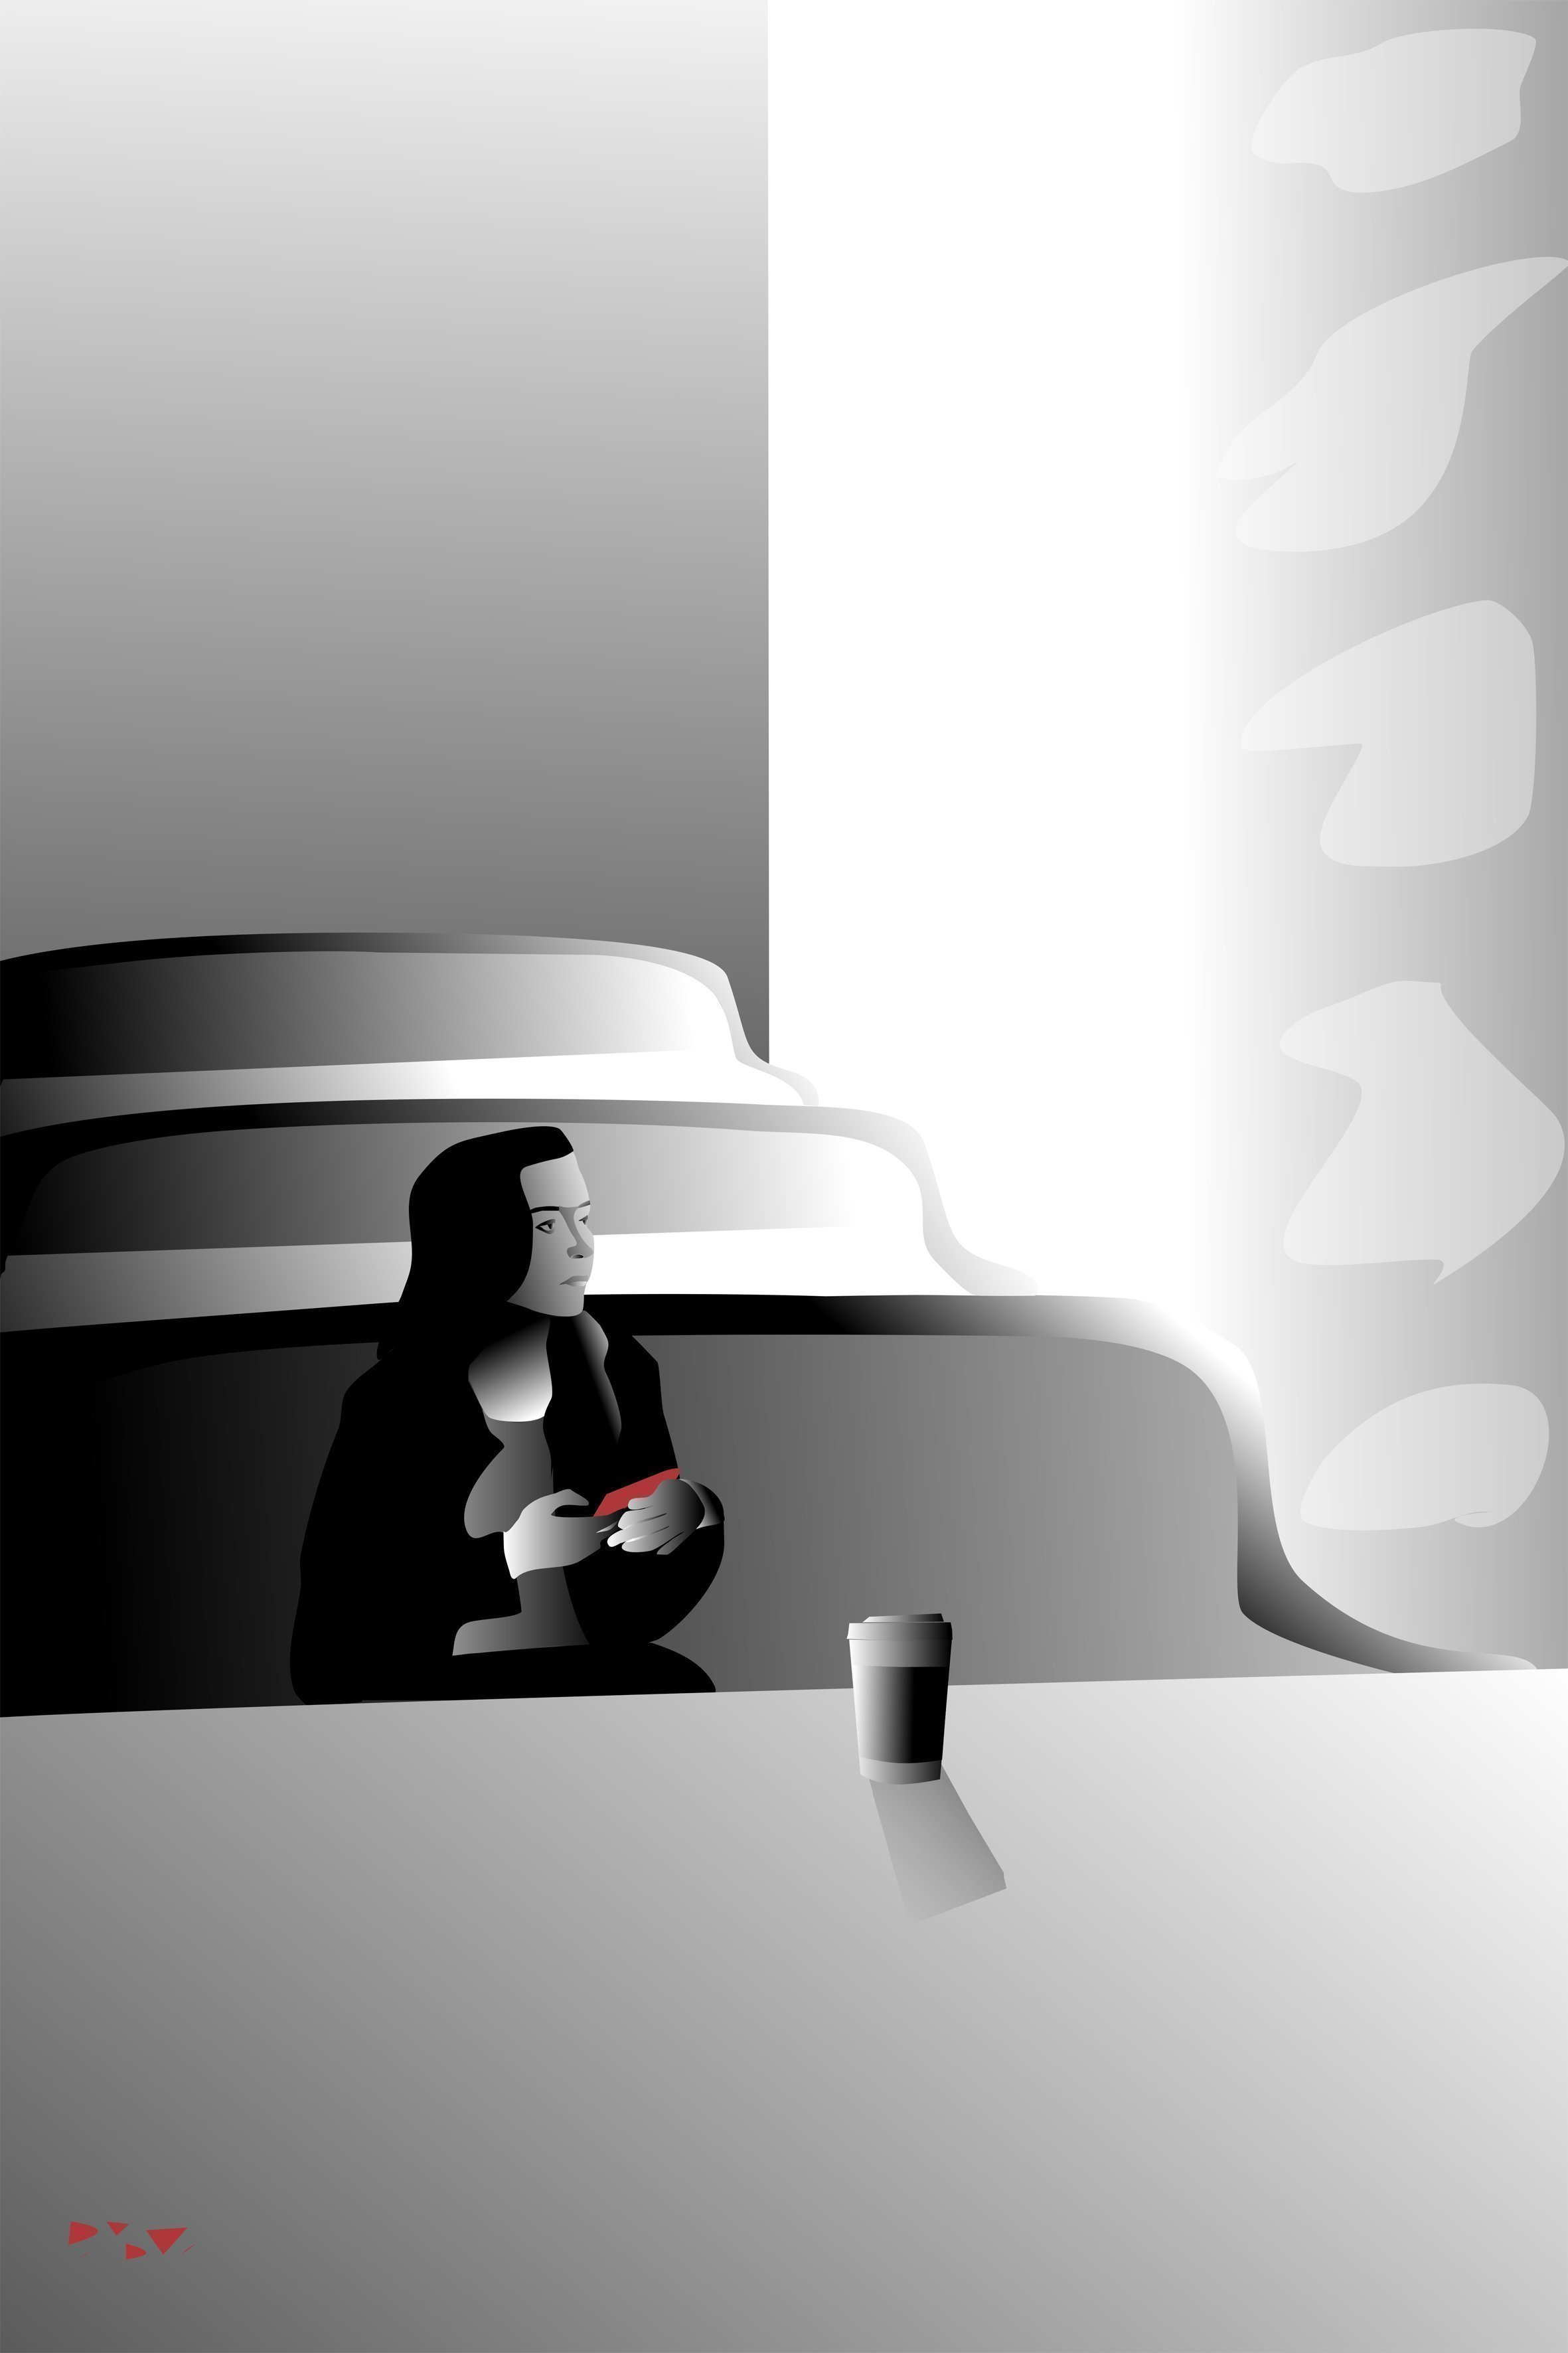 Pauline Van De Ven: 'diner digital vector', 2018 Digital Painting, Figurative. Artist Description: A numerically unique digital vector painting depicting a young woman in a diner. Restrained colors give the painting a soft, nuanced appearance. This large work needs clean white walls and a sparsely furnished room of modern design. High resolution of 14000 x 21000 px. at 300 dpi. Certificate ...